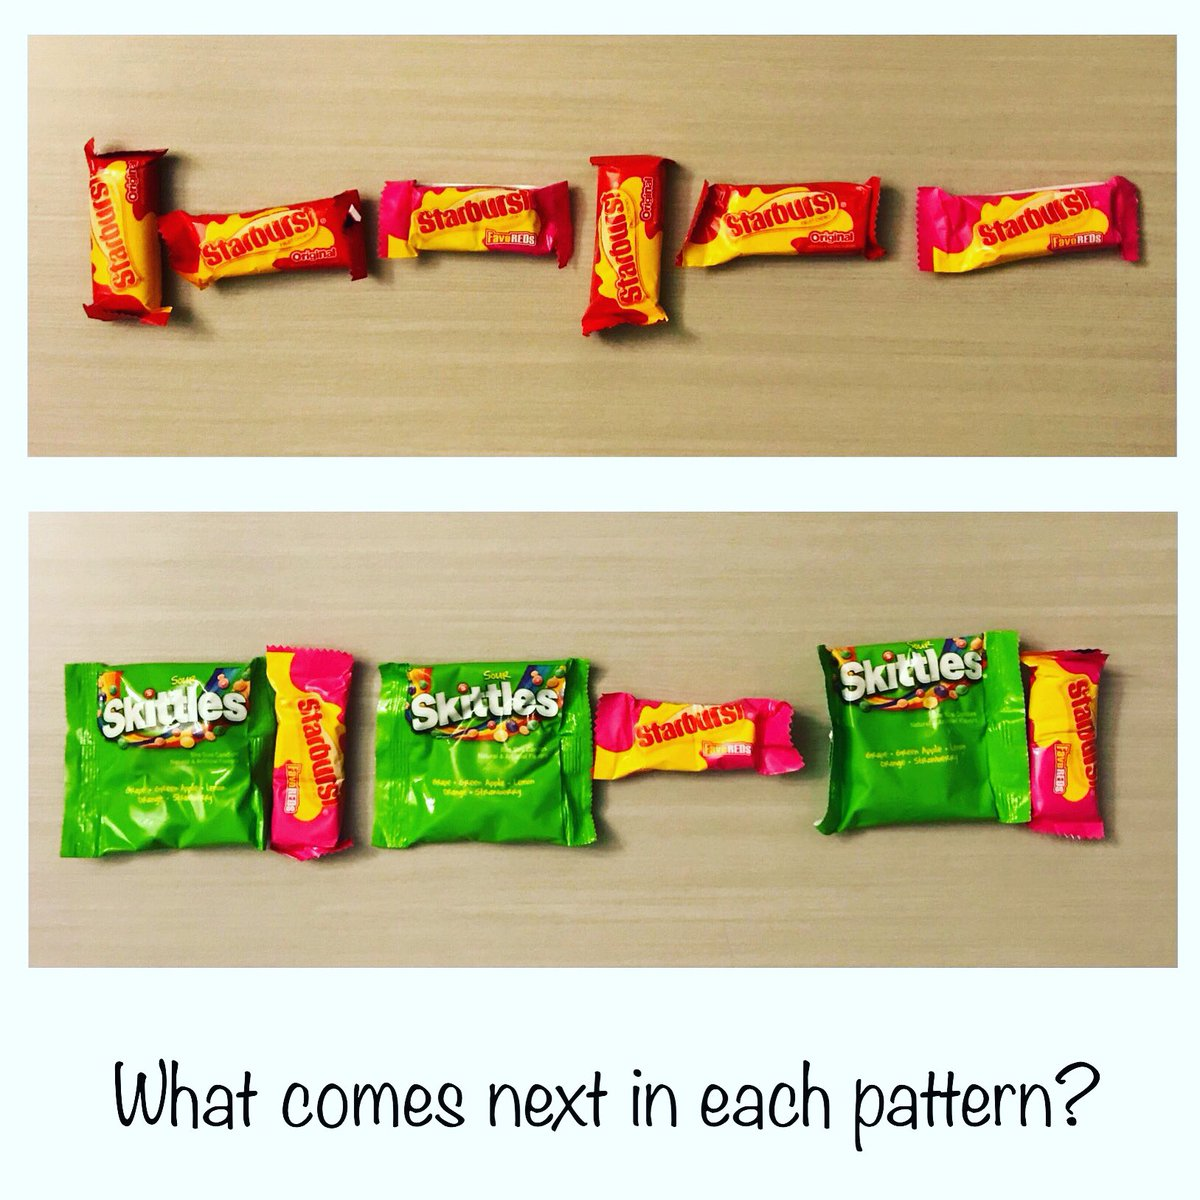 test Twitter Media - We did some candy patterns. Kids can create their own and take turns filling in the next steps in the pattern.  The idea is courtesy of @countingwithkids. Check out her other amazing ideas for doing math with your kids! #everyonecanlearnmath #tmwyk https://t.co/SicNE1csoW